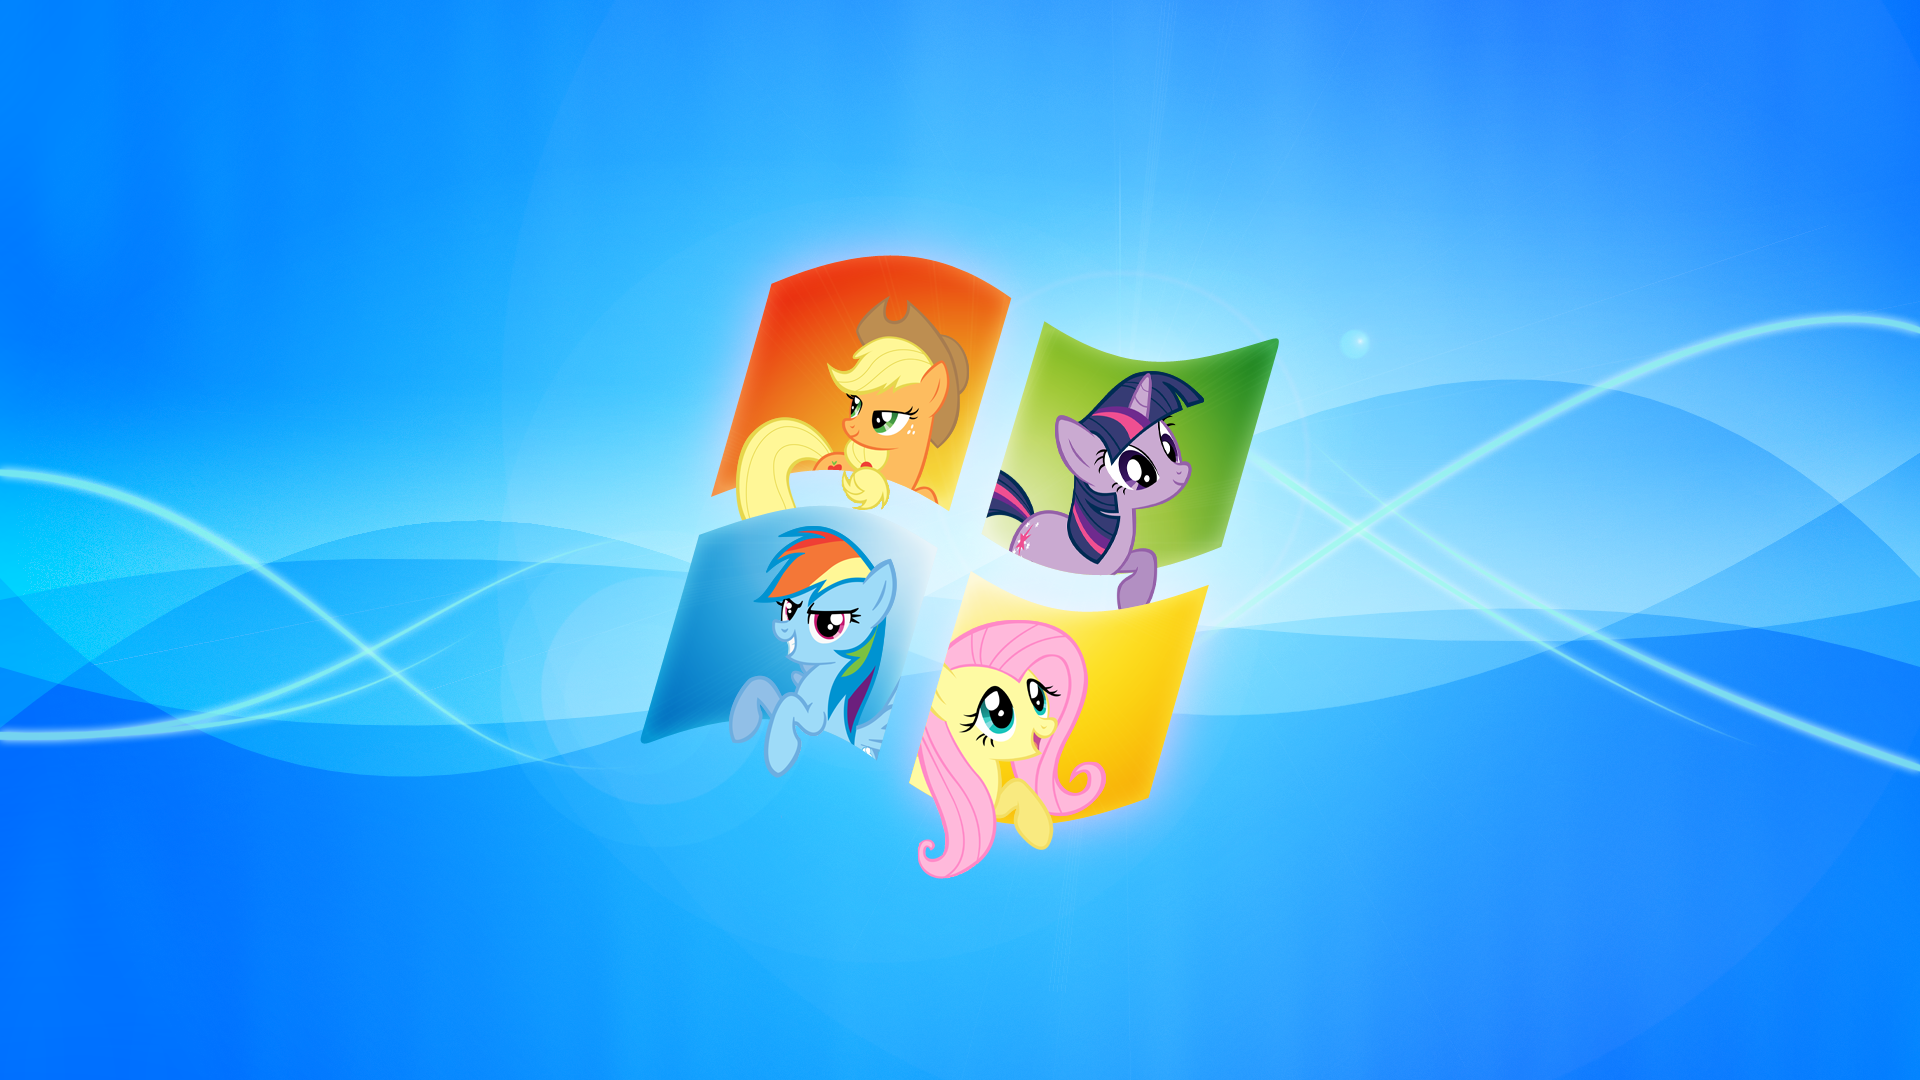 Windows My Little Pony Wallpaper By Piranhaplant1 Fan Art 1920x1080